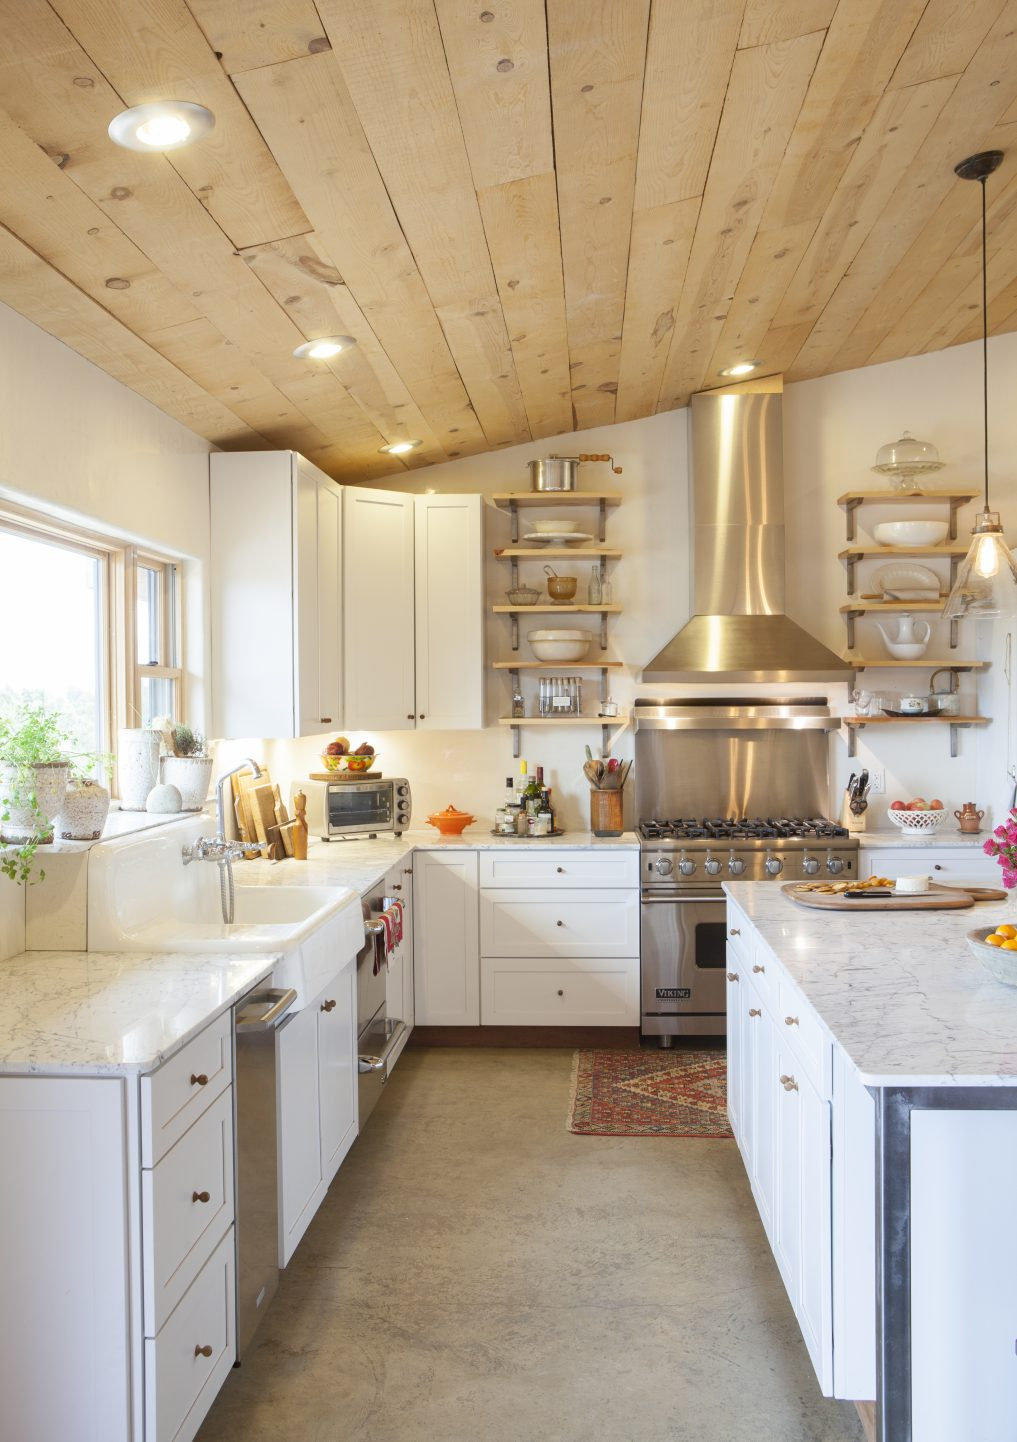 Love the hand hewn wood on the ceiling and the concrete floors of this kitchen